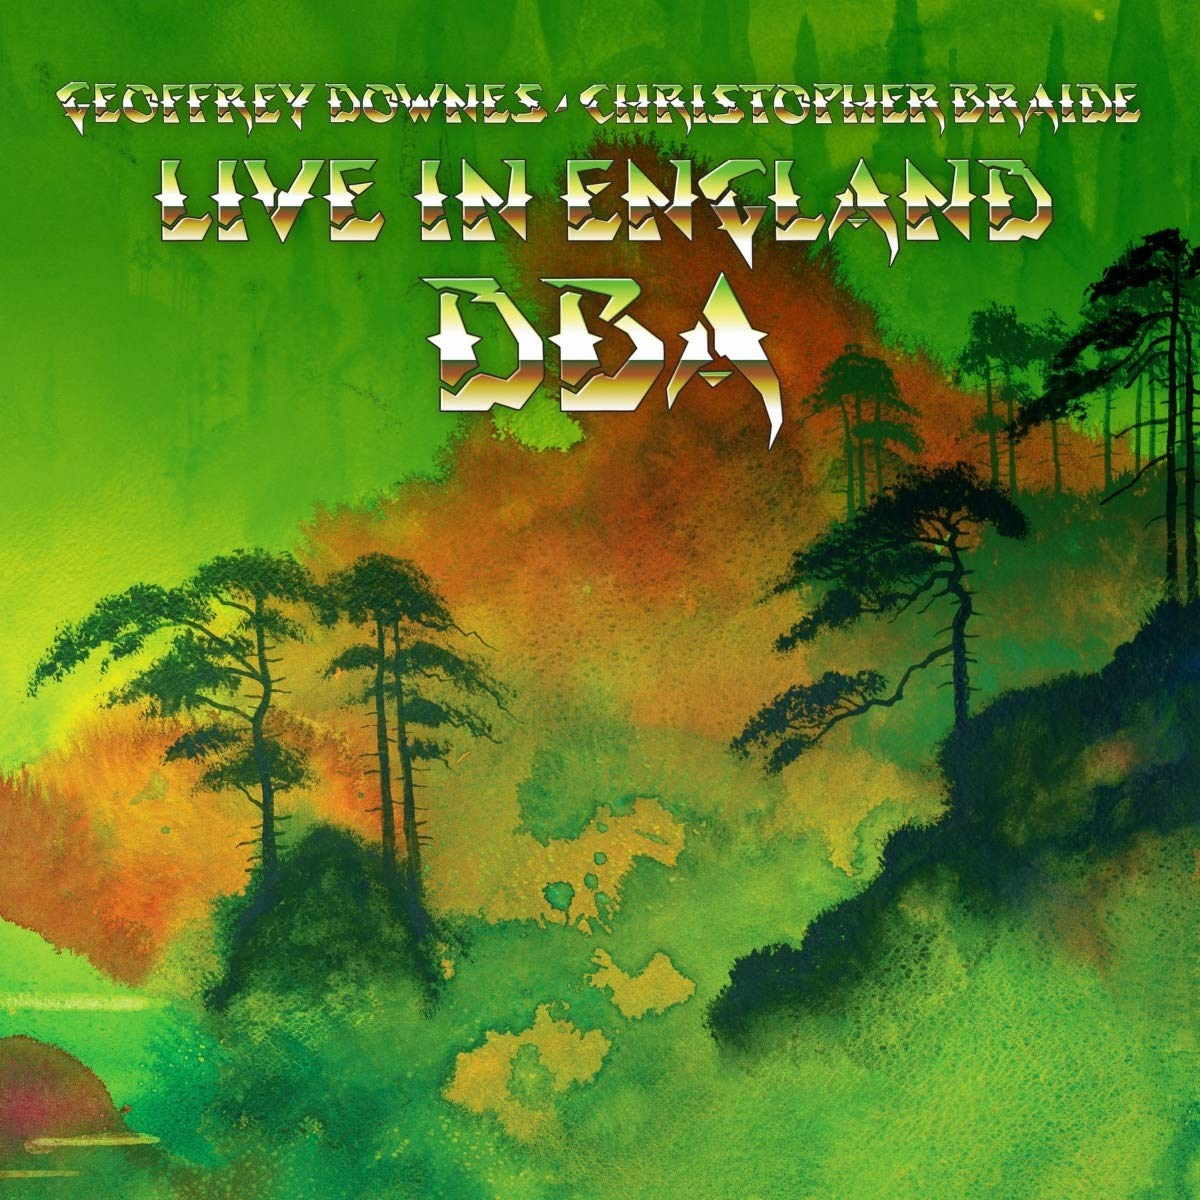 Live in England Cover art